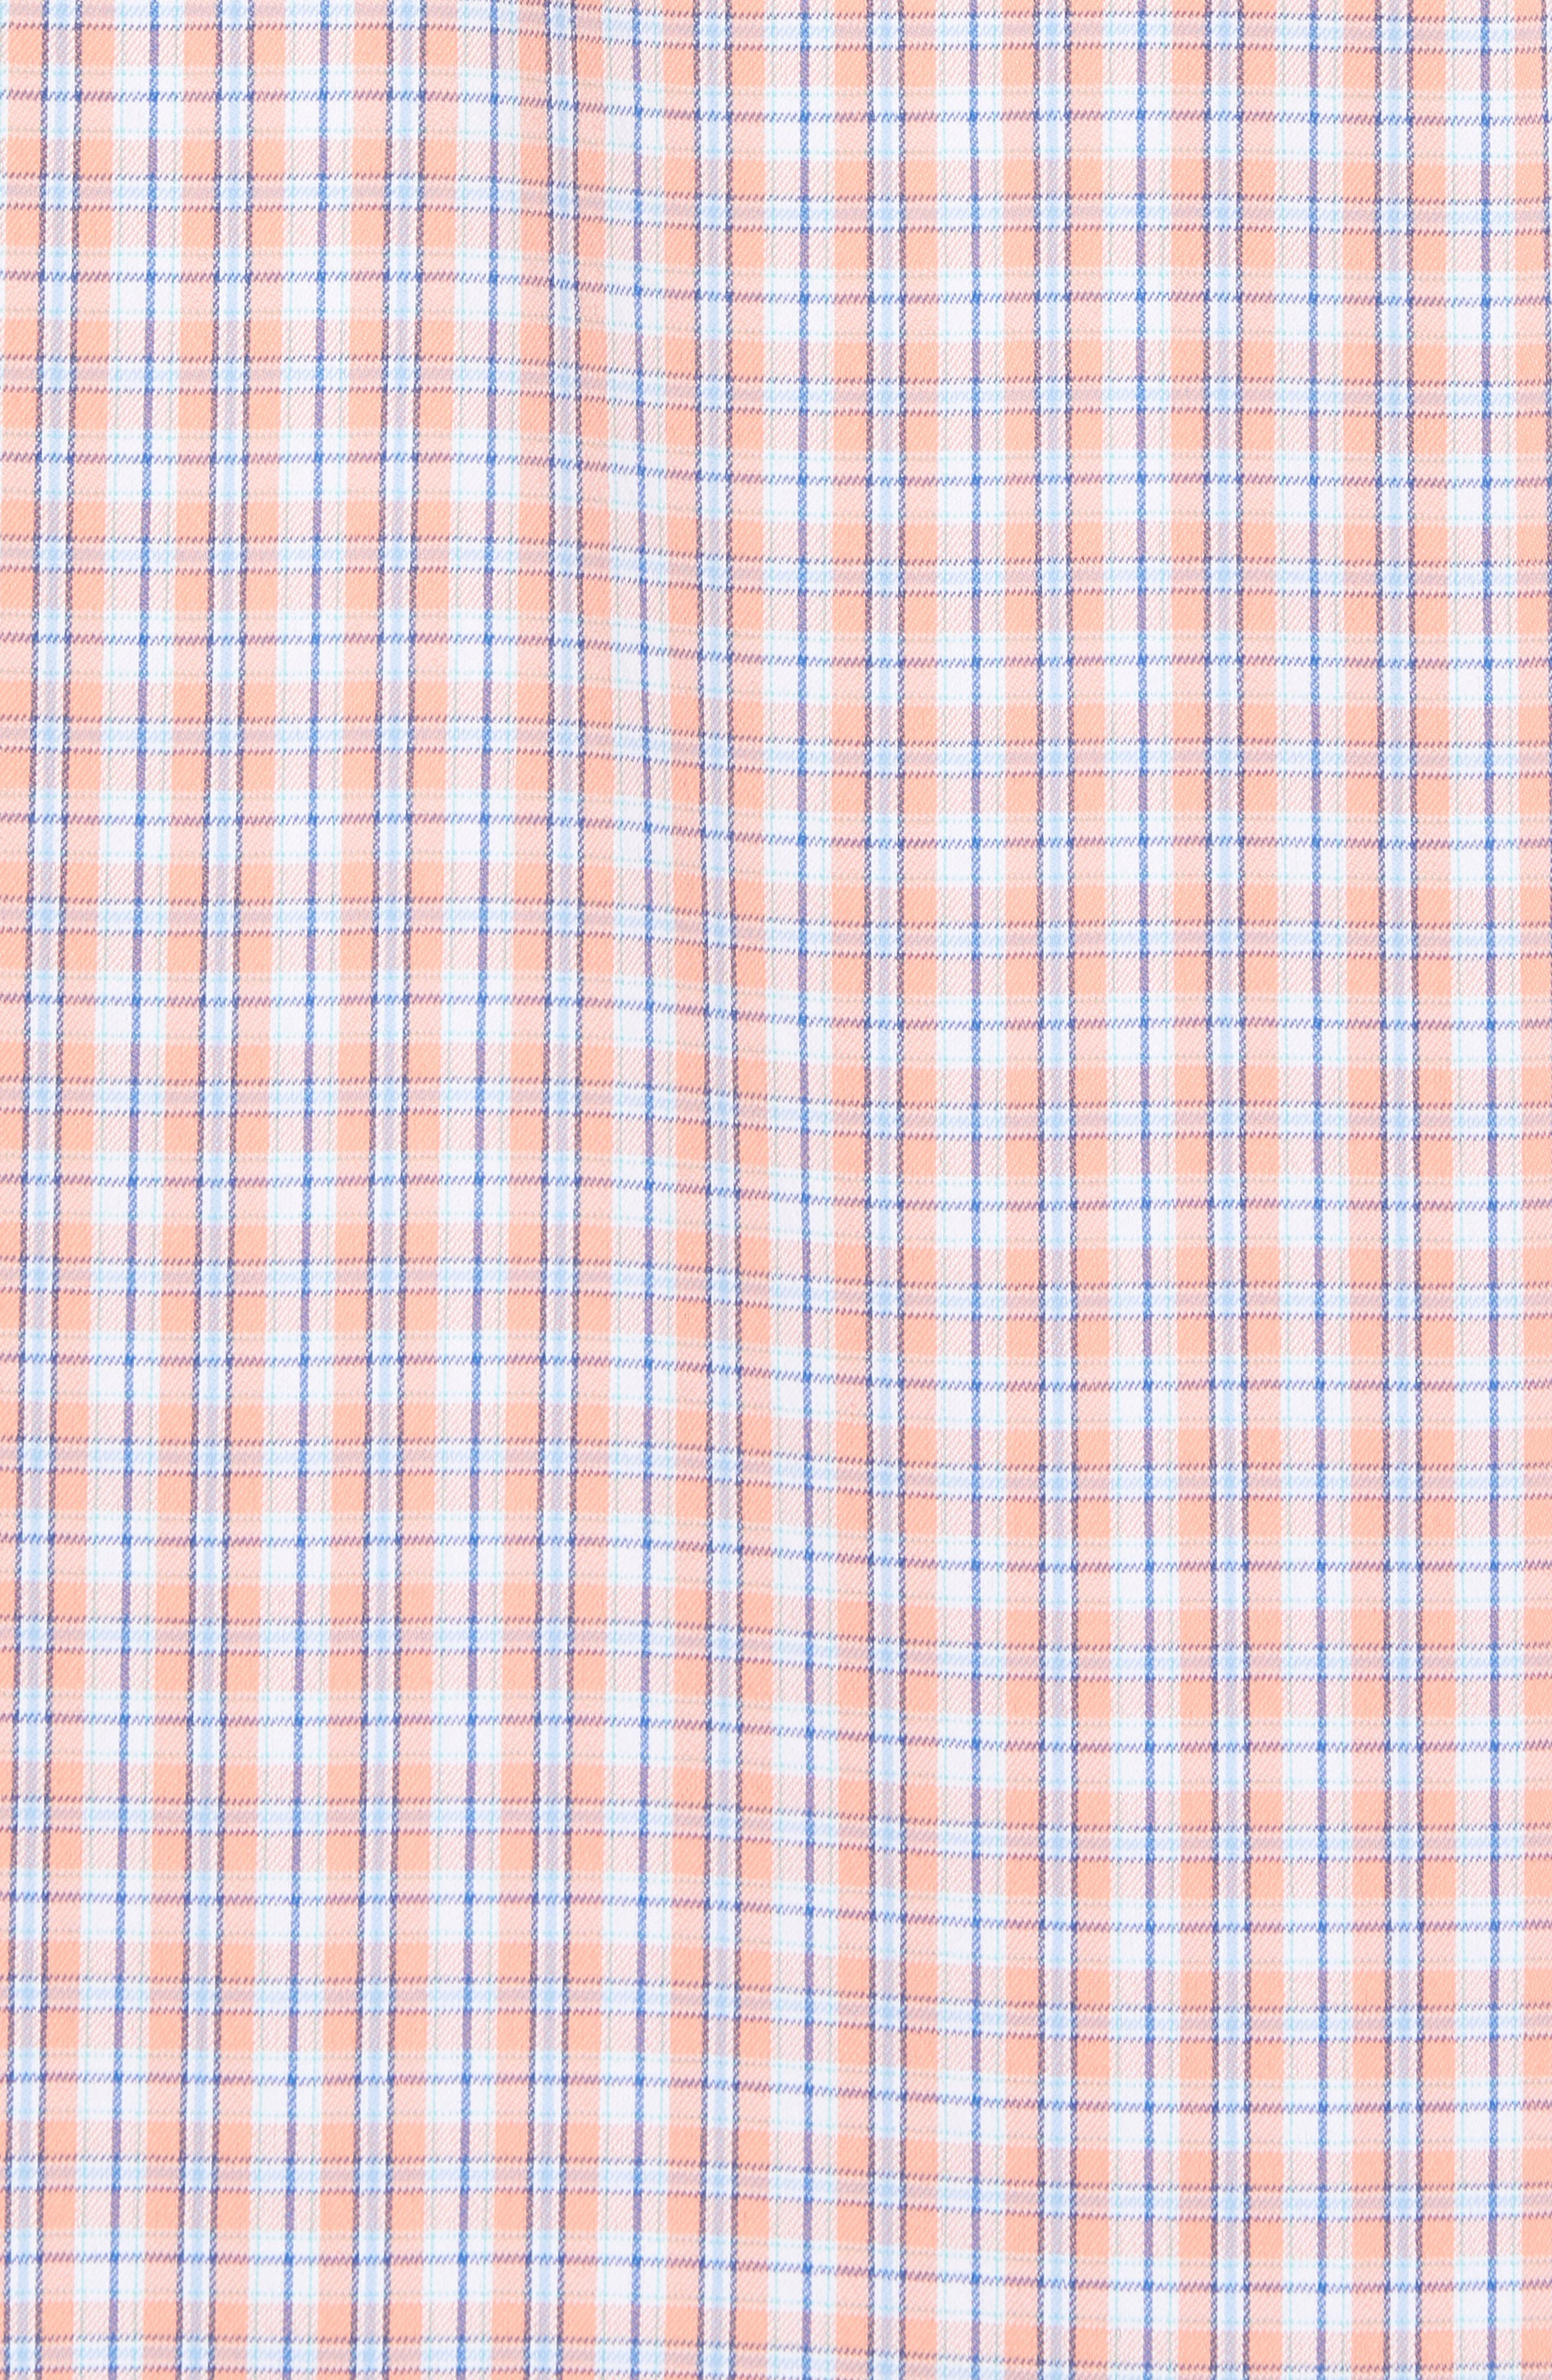 Grand Turk Regular Fit Stretch Plaid Sport Shirt,                             Alternate thumbnail 5, color,                             Nectar Coral